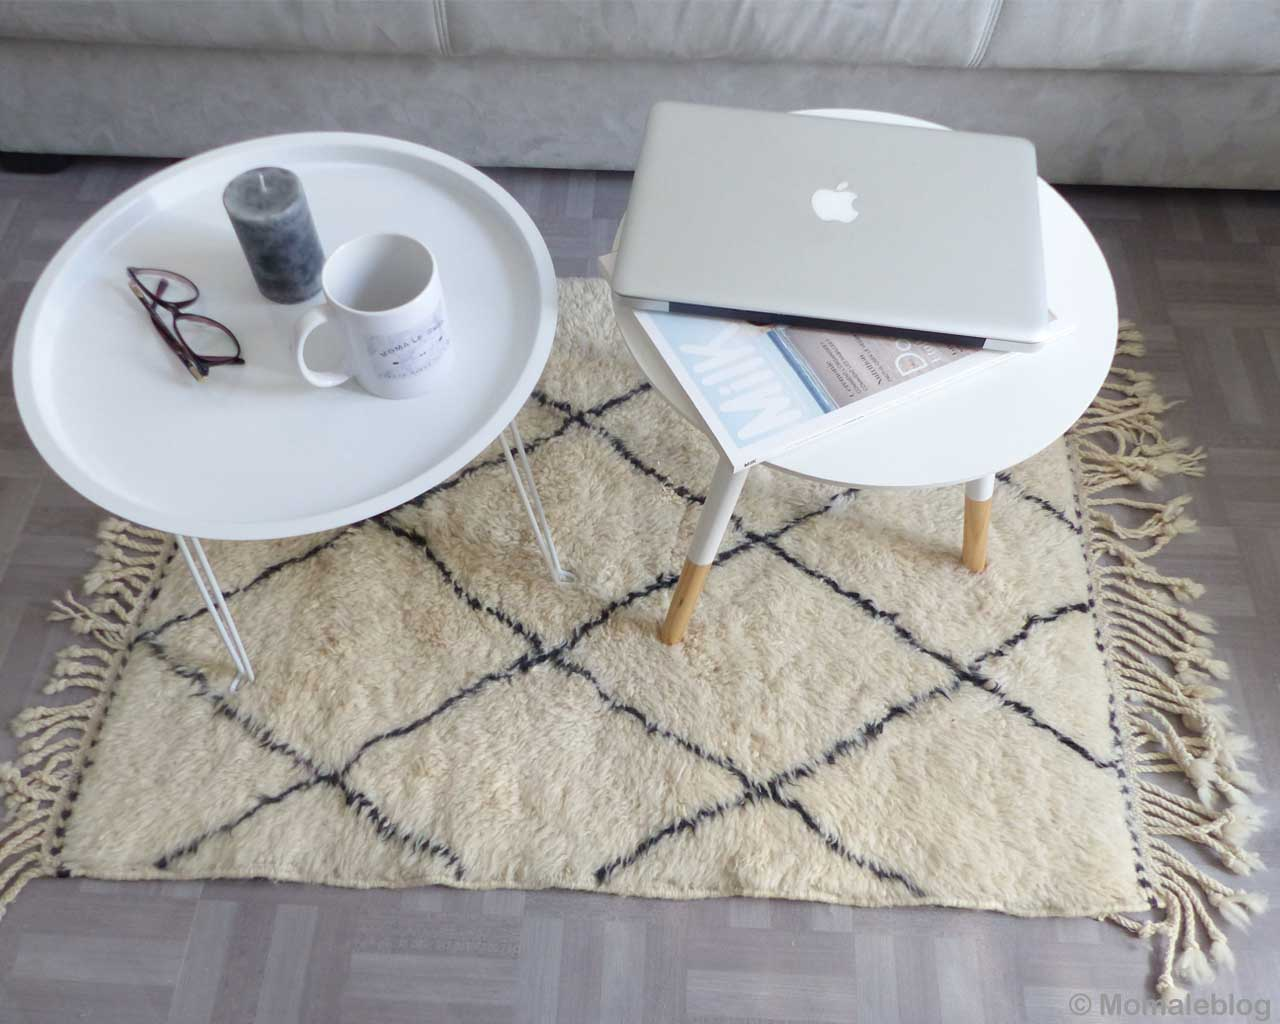 glasses cup and laptop on round table morocco modern rugs